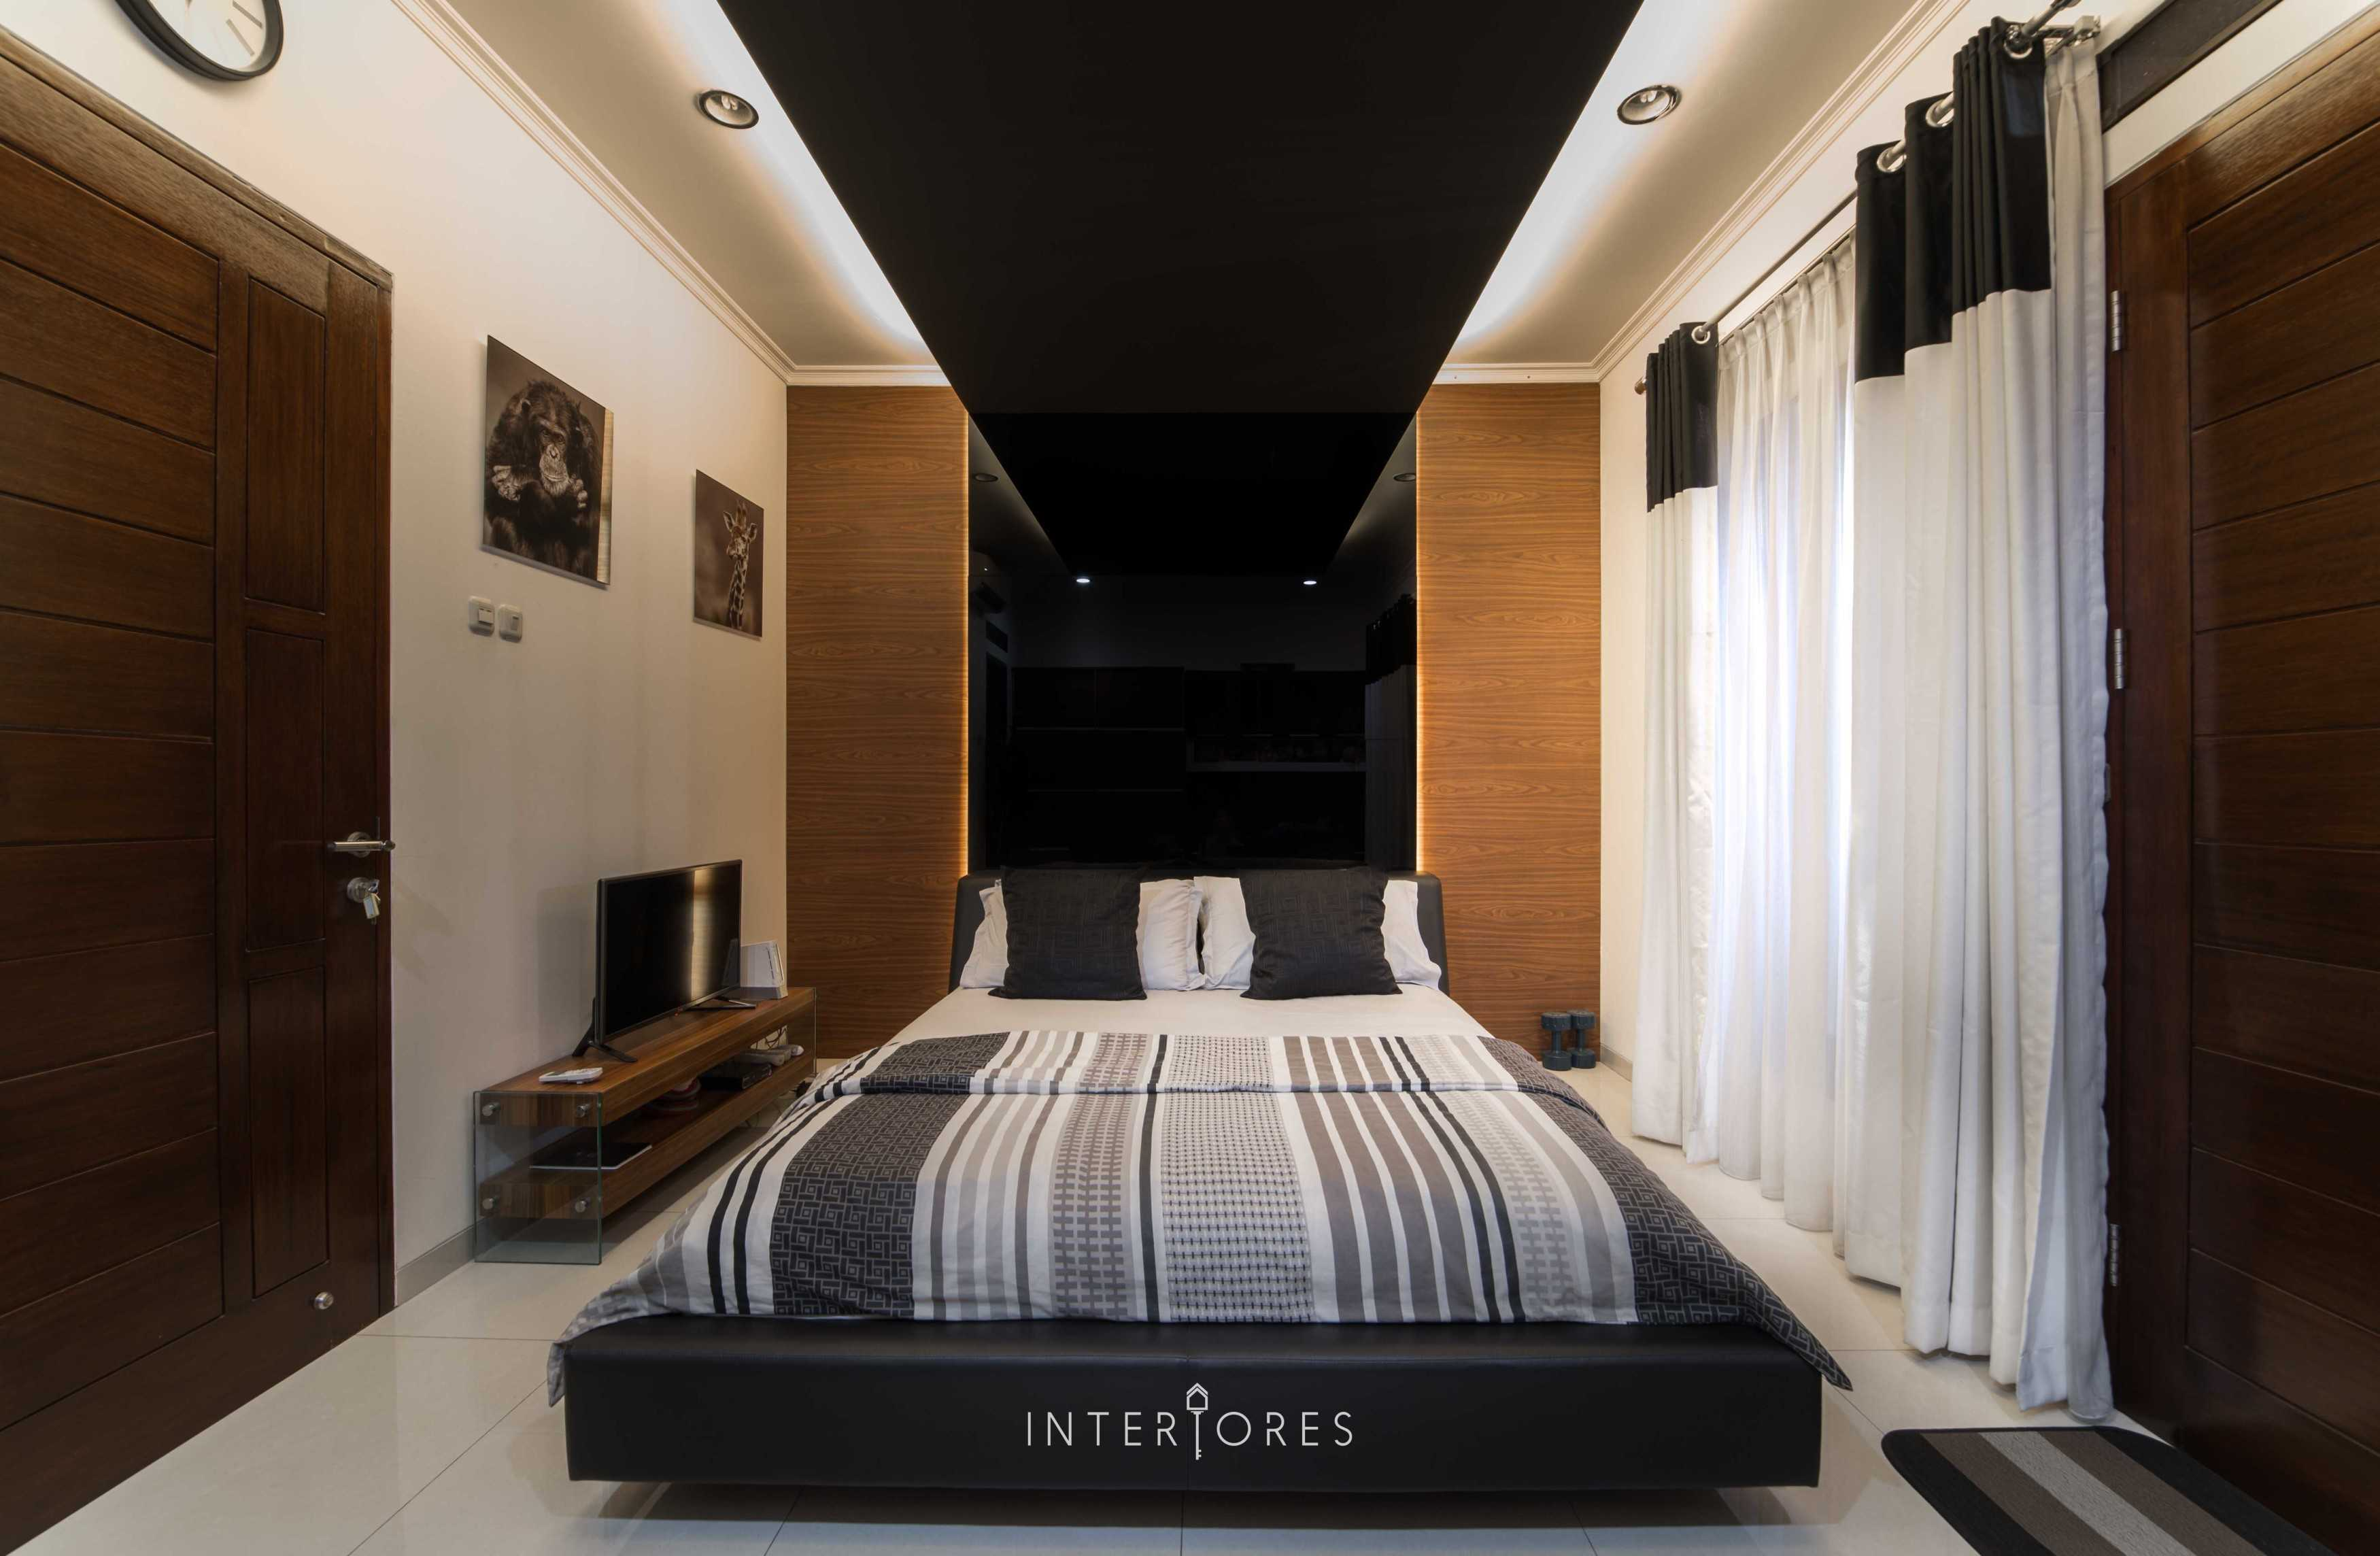 Interiores Interior Consultant & Build Greta 90 Bintaro Bintaro Bedroom Kontemporer  17667